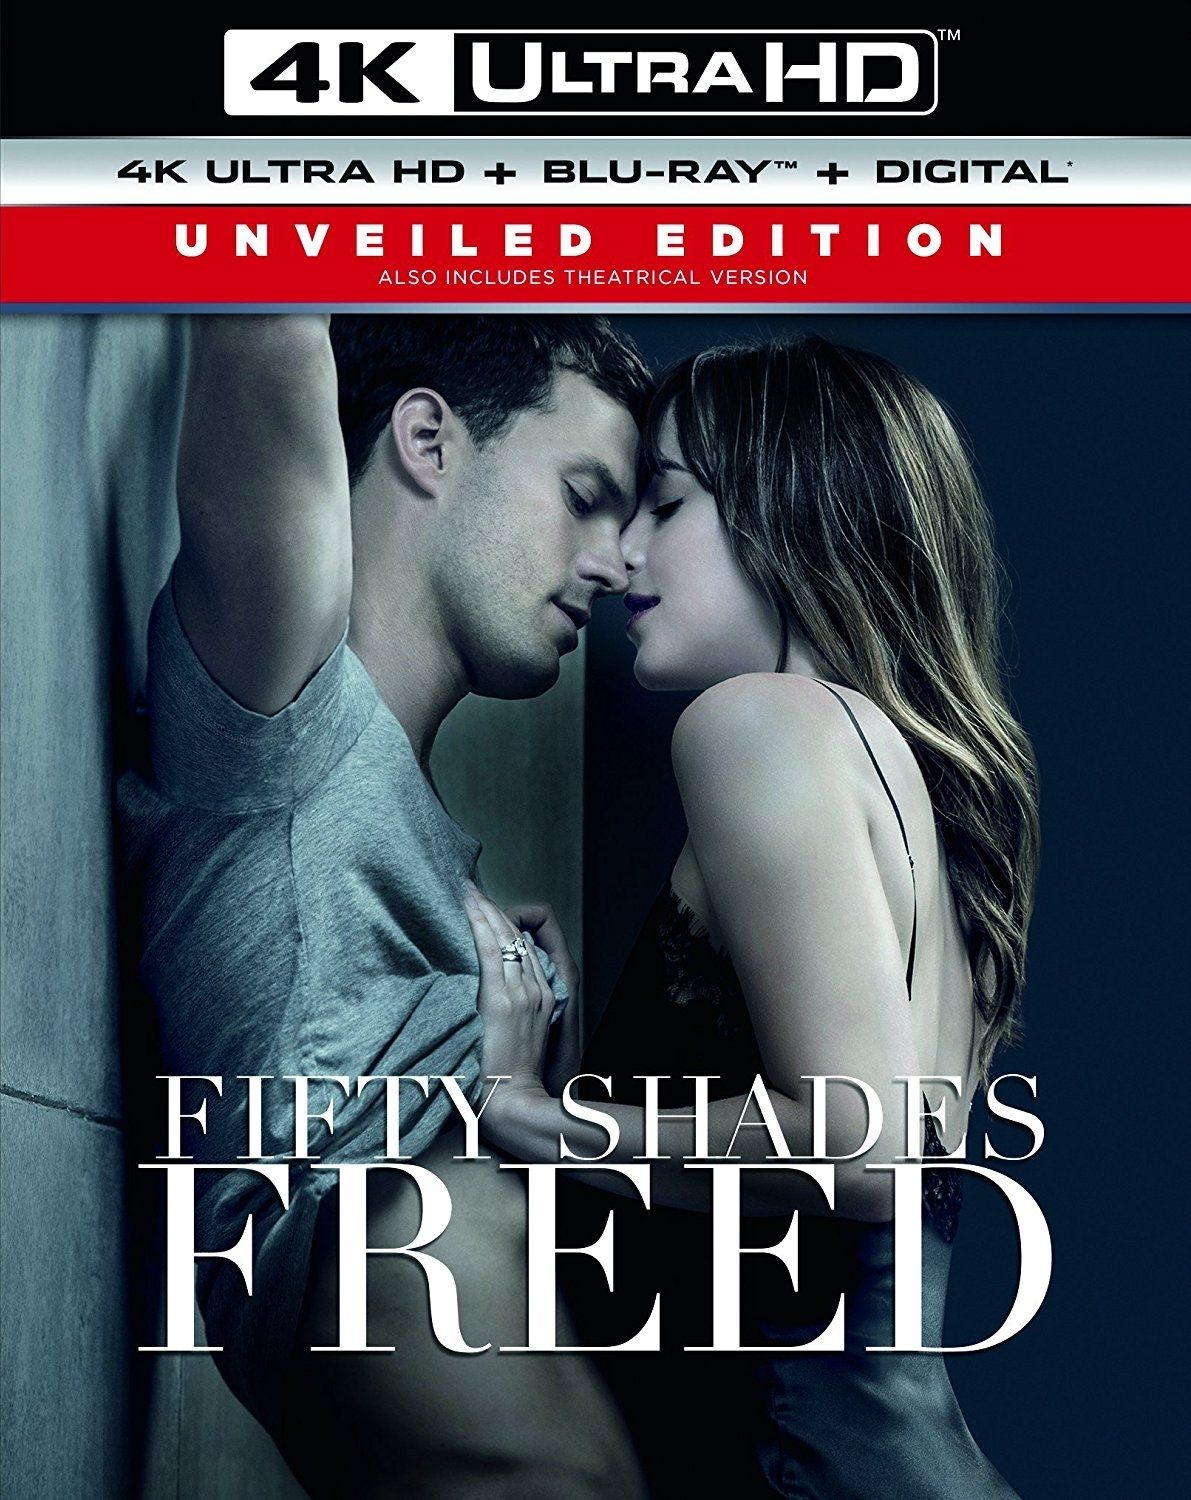 Beneath The Valley Of The Ultra Vixens Watch fifty shades freed 4k blu-ray: unrated edition | fifty